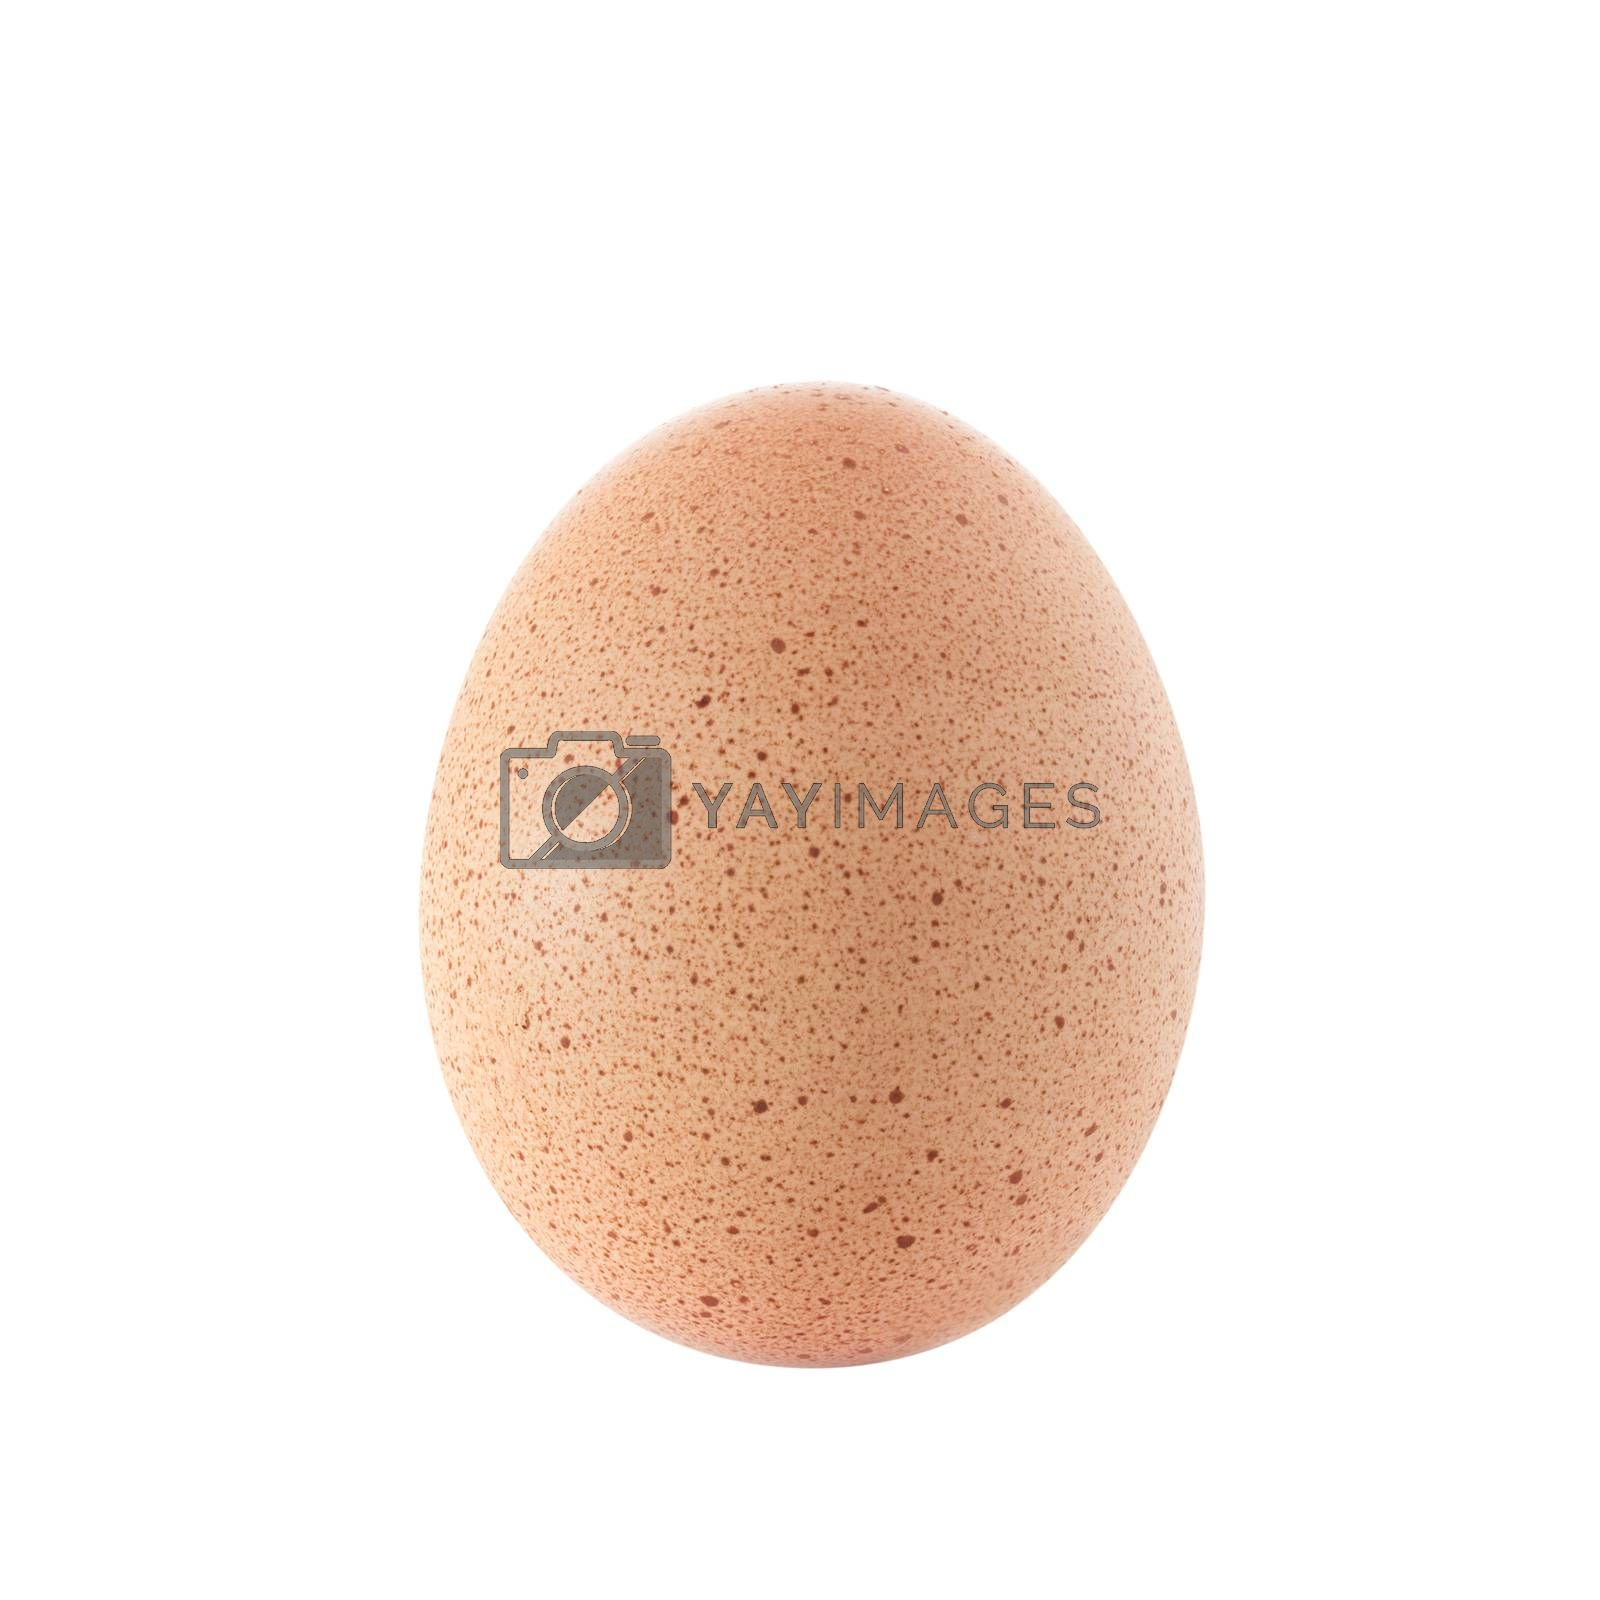 Egg with stains isolated on white background